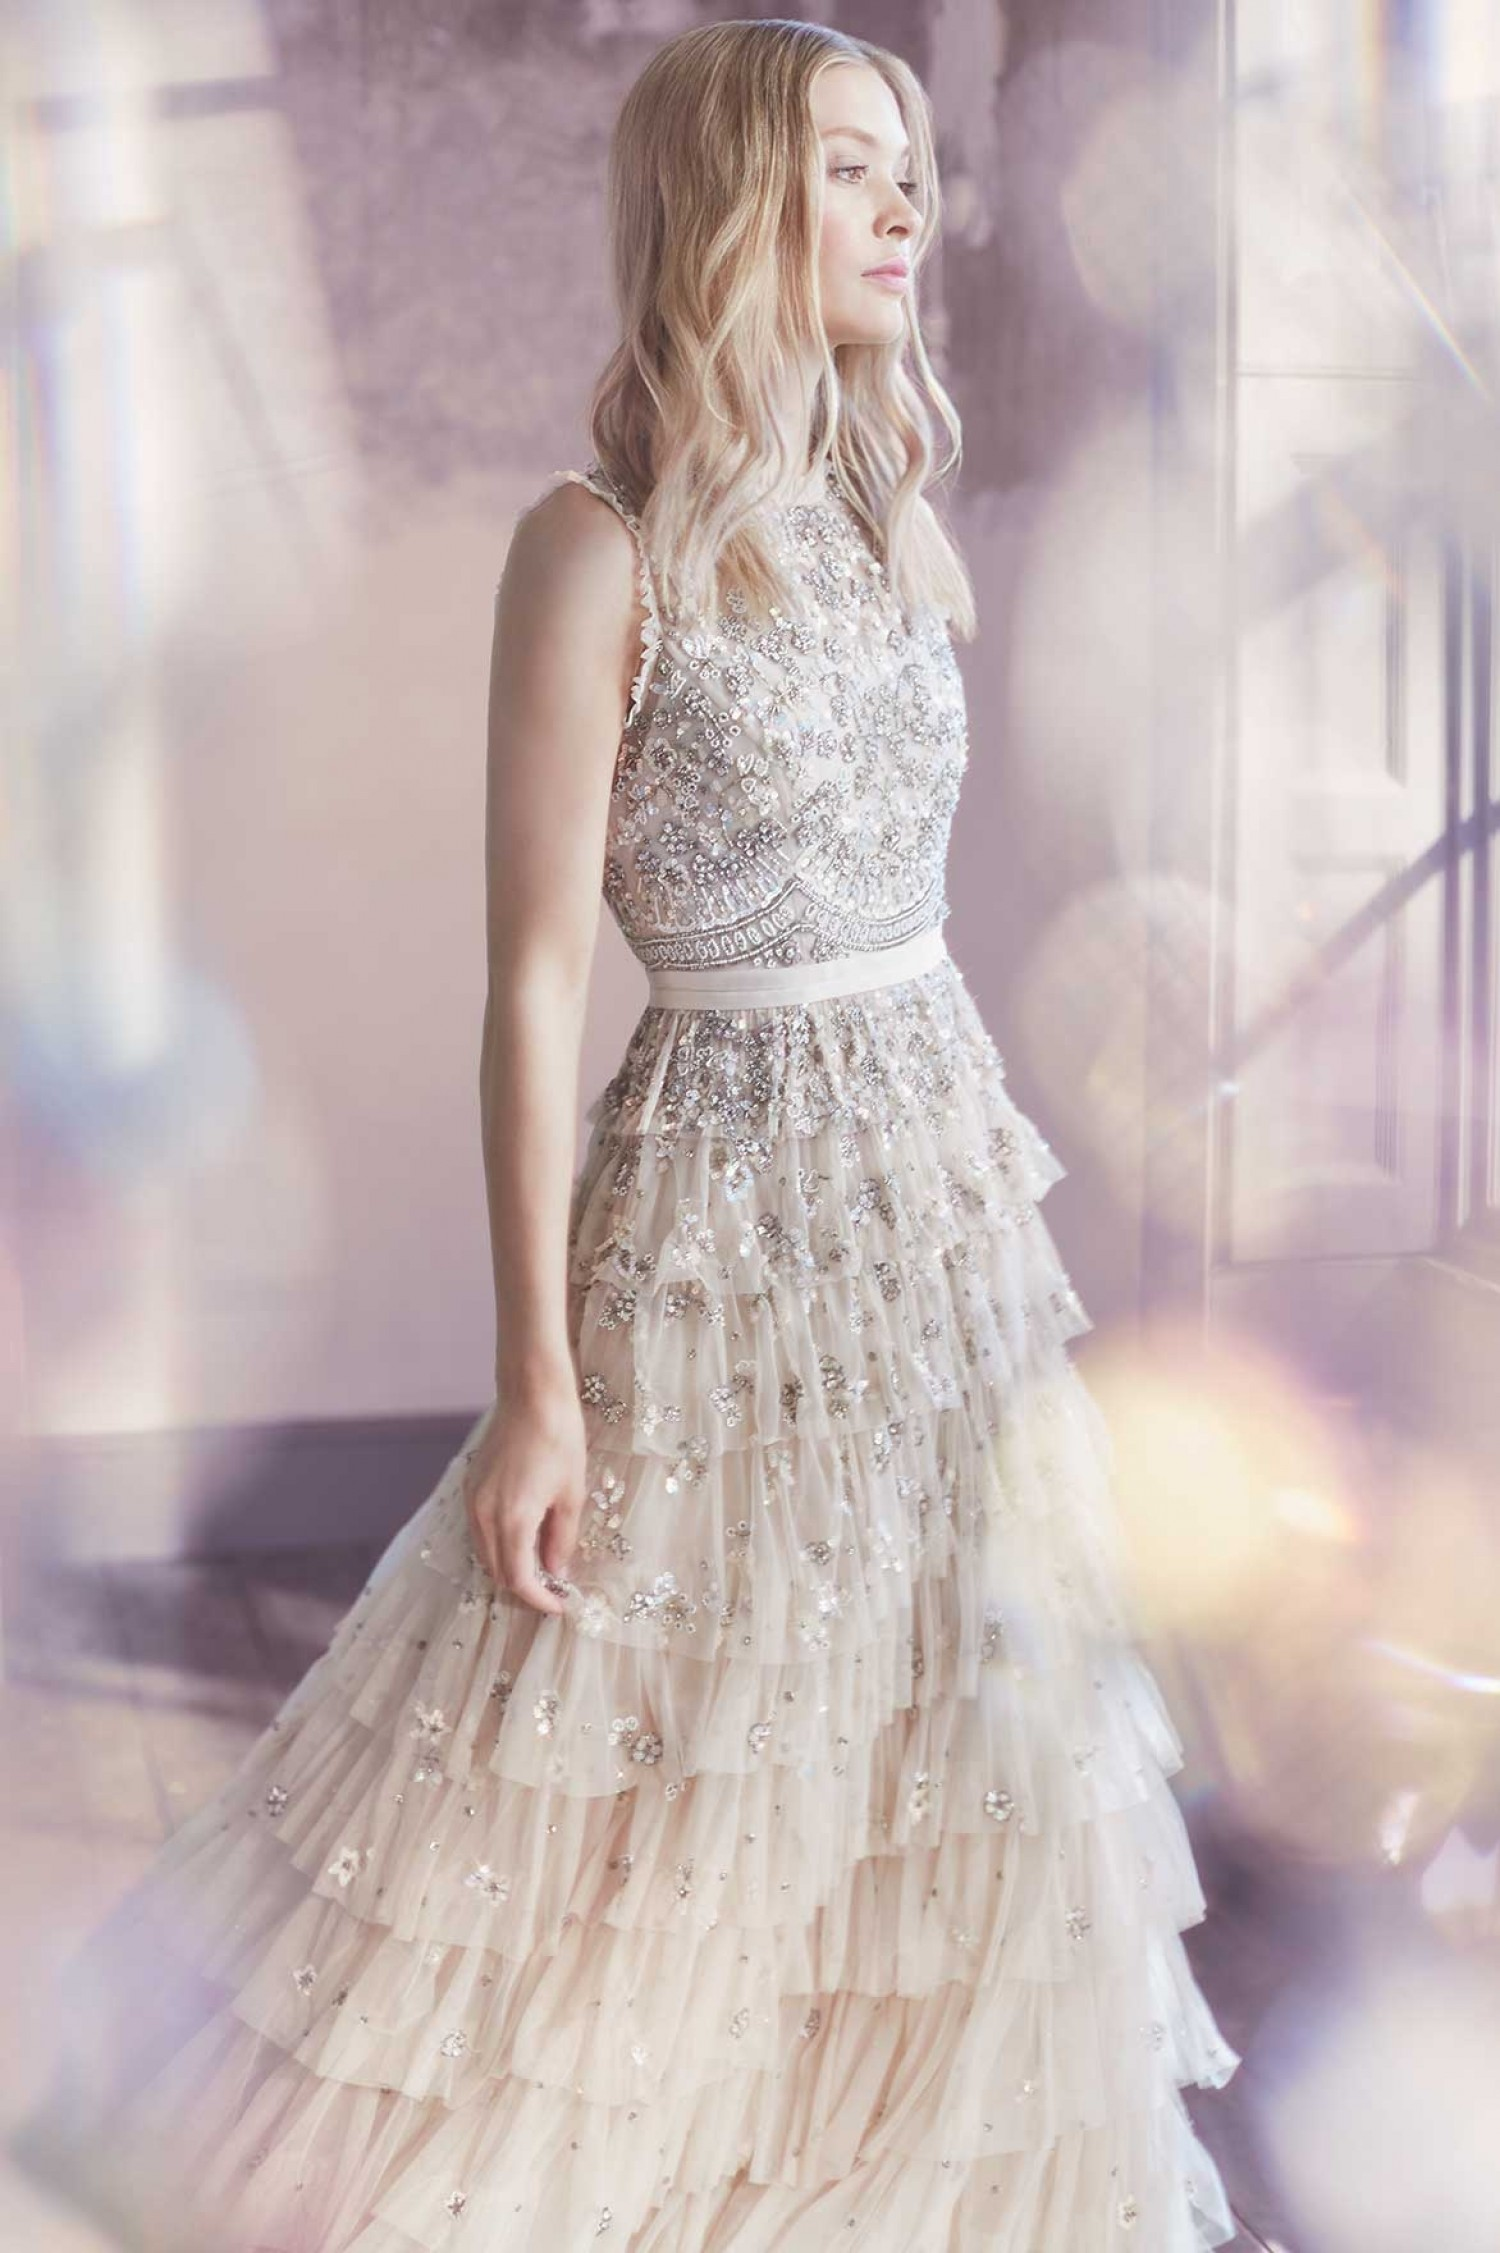 pearlescent_gown_-_champagne_-_needle_thread_-_5_2.jpg